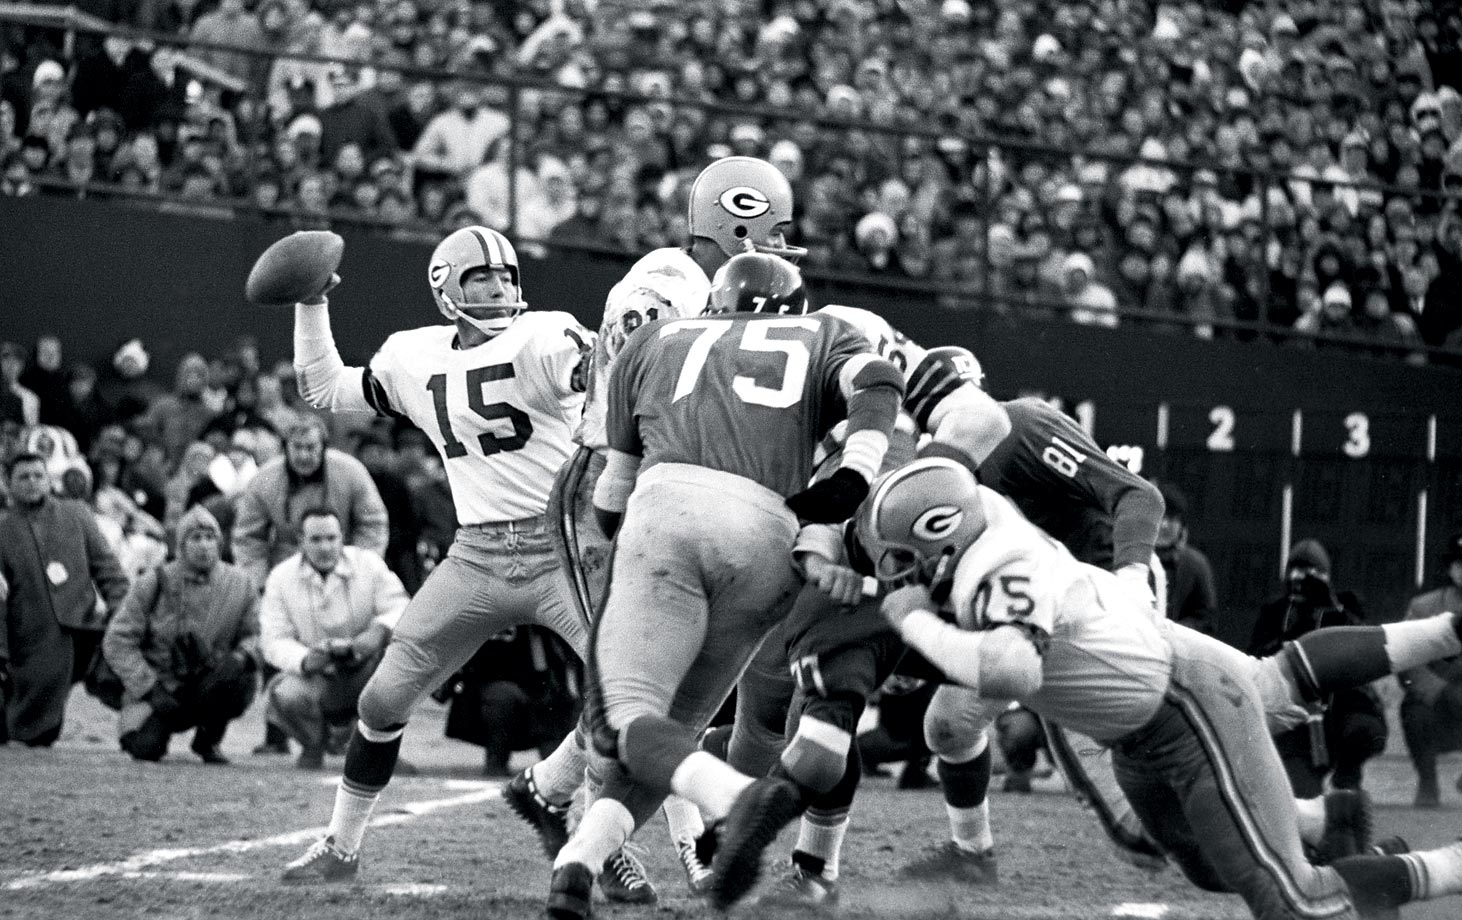 Before joining the Packers, Bart Starr played his college ball at Alabama, and it was the Crimson Tide's basketball coach, Johnny Dee—a friend of Packers personnel director Jack Vainisi—who touted Starr as a pro prospect. The Packers saw a quarterback with tremendous potential and selected him in the 17th round of the 1956 NFL Draft with the 200th pick. (Text credit: Shannon Carroll)